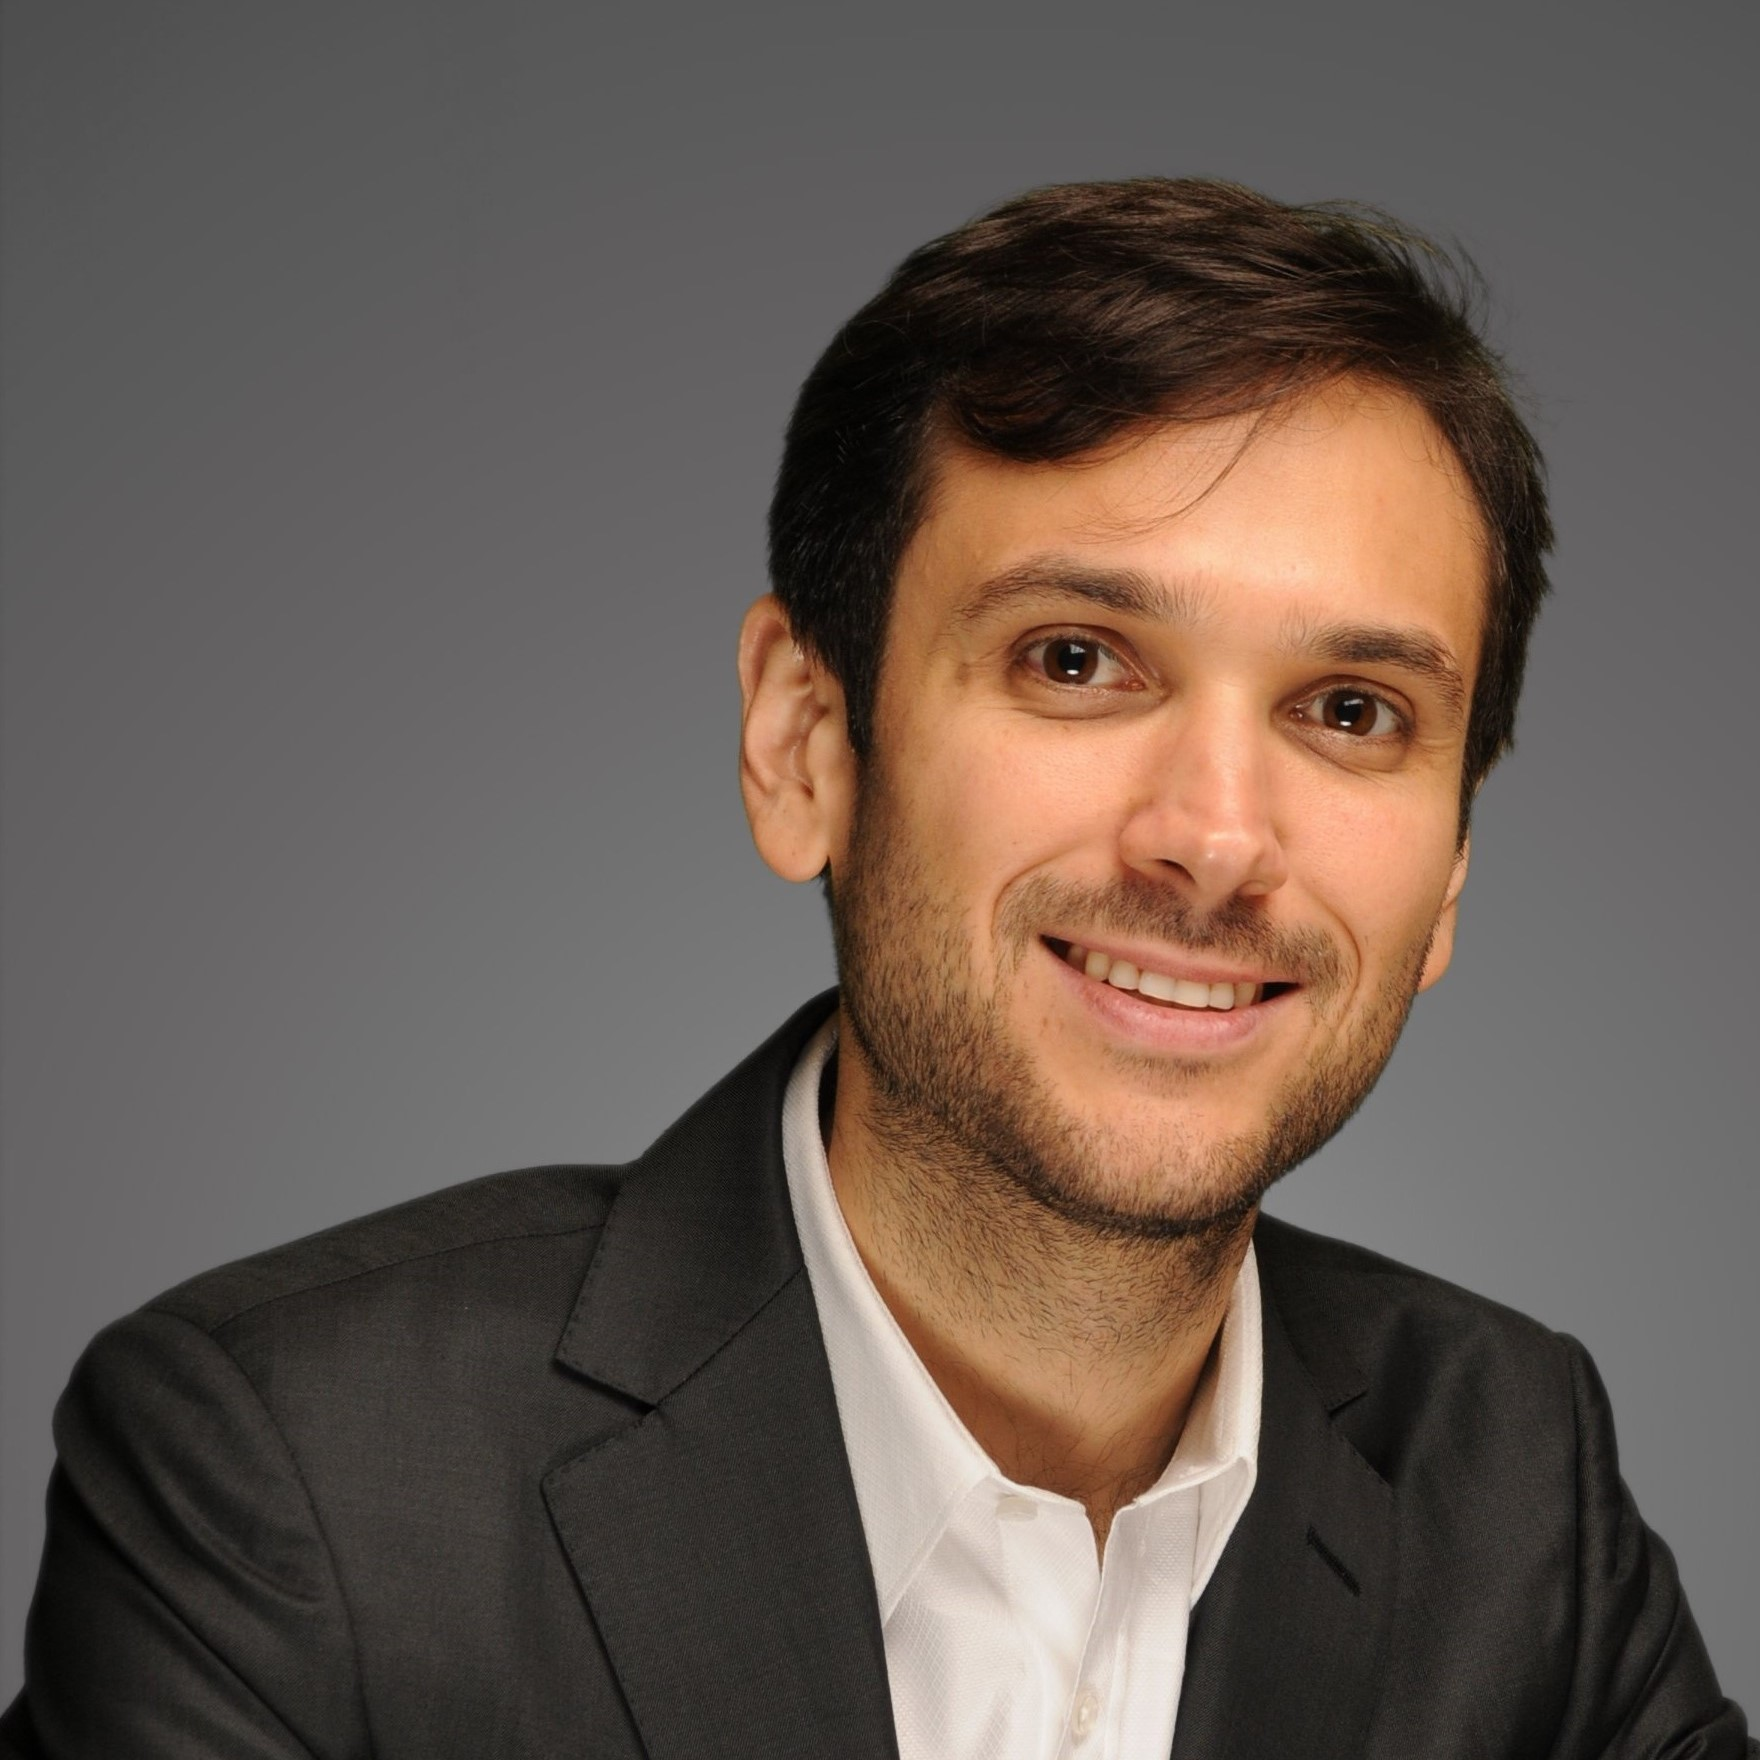 Alberto Fassioli - Alberto (Beto) was born and raised in Lima, Peru, where he received his Bachelor's degree in Industrial Engineering from the Universidad de Lima. He began his professional career working in banking, and in 2011 started working in Business Strategy for a commercial airline in Lima, where he developed his passion for traveling. He currently serves on the board of the Diversity Committee of Student Government and the Latin American Business Association. He is planning to pursue a career in consulting.